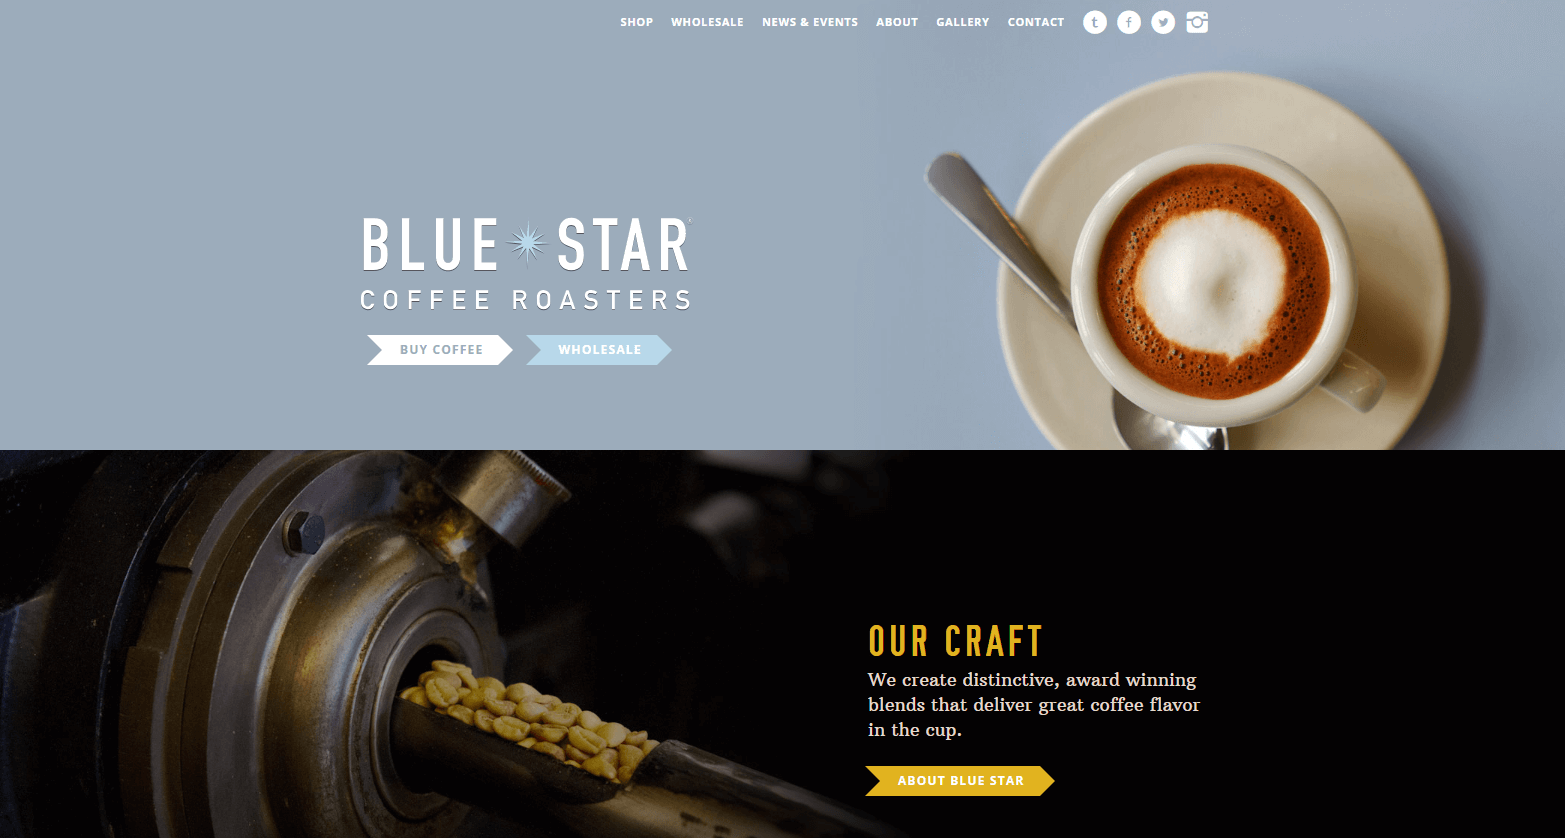 The Blue Star website.